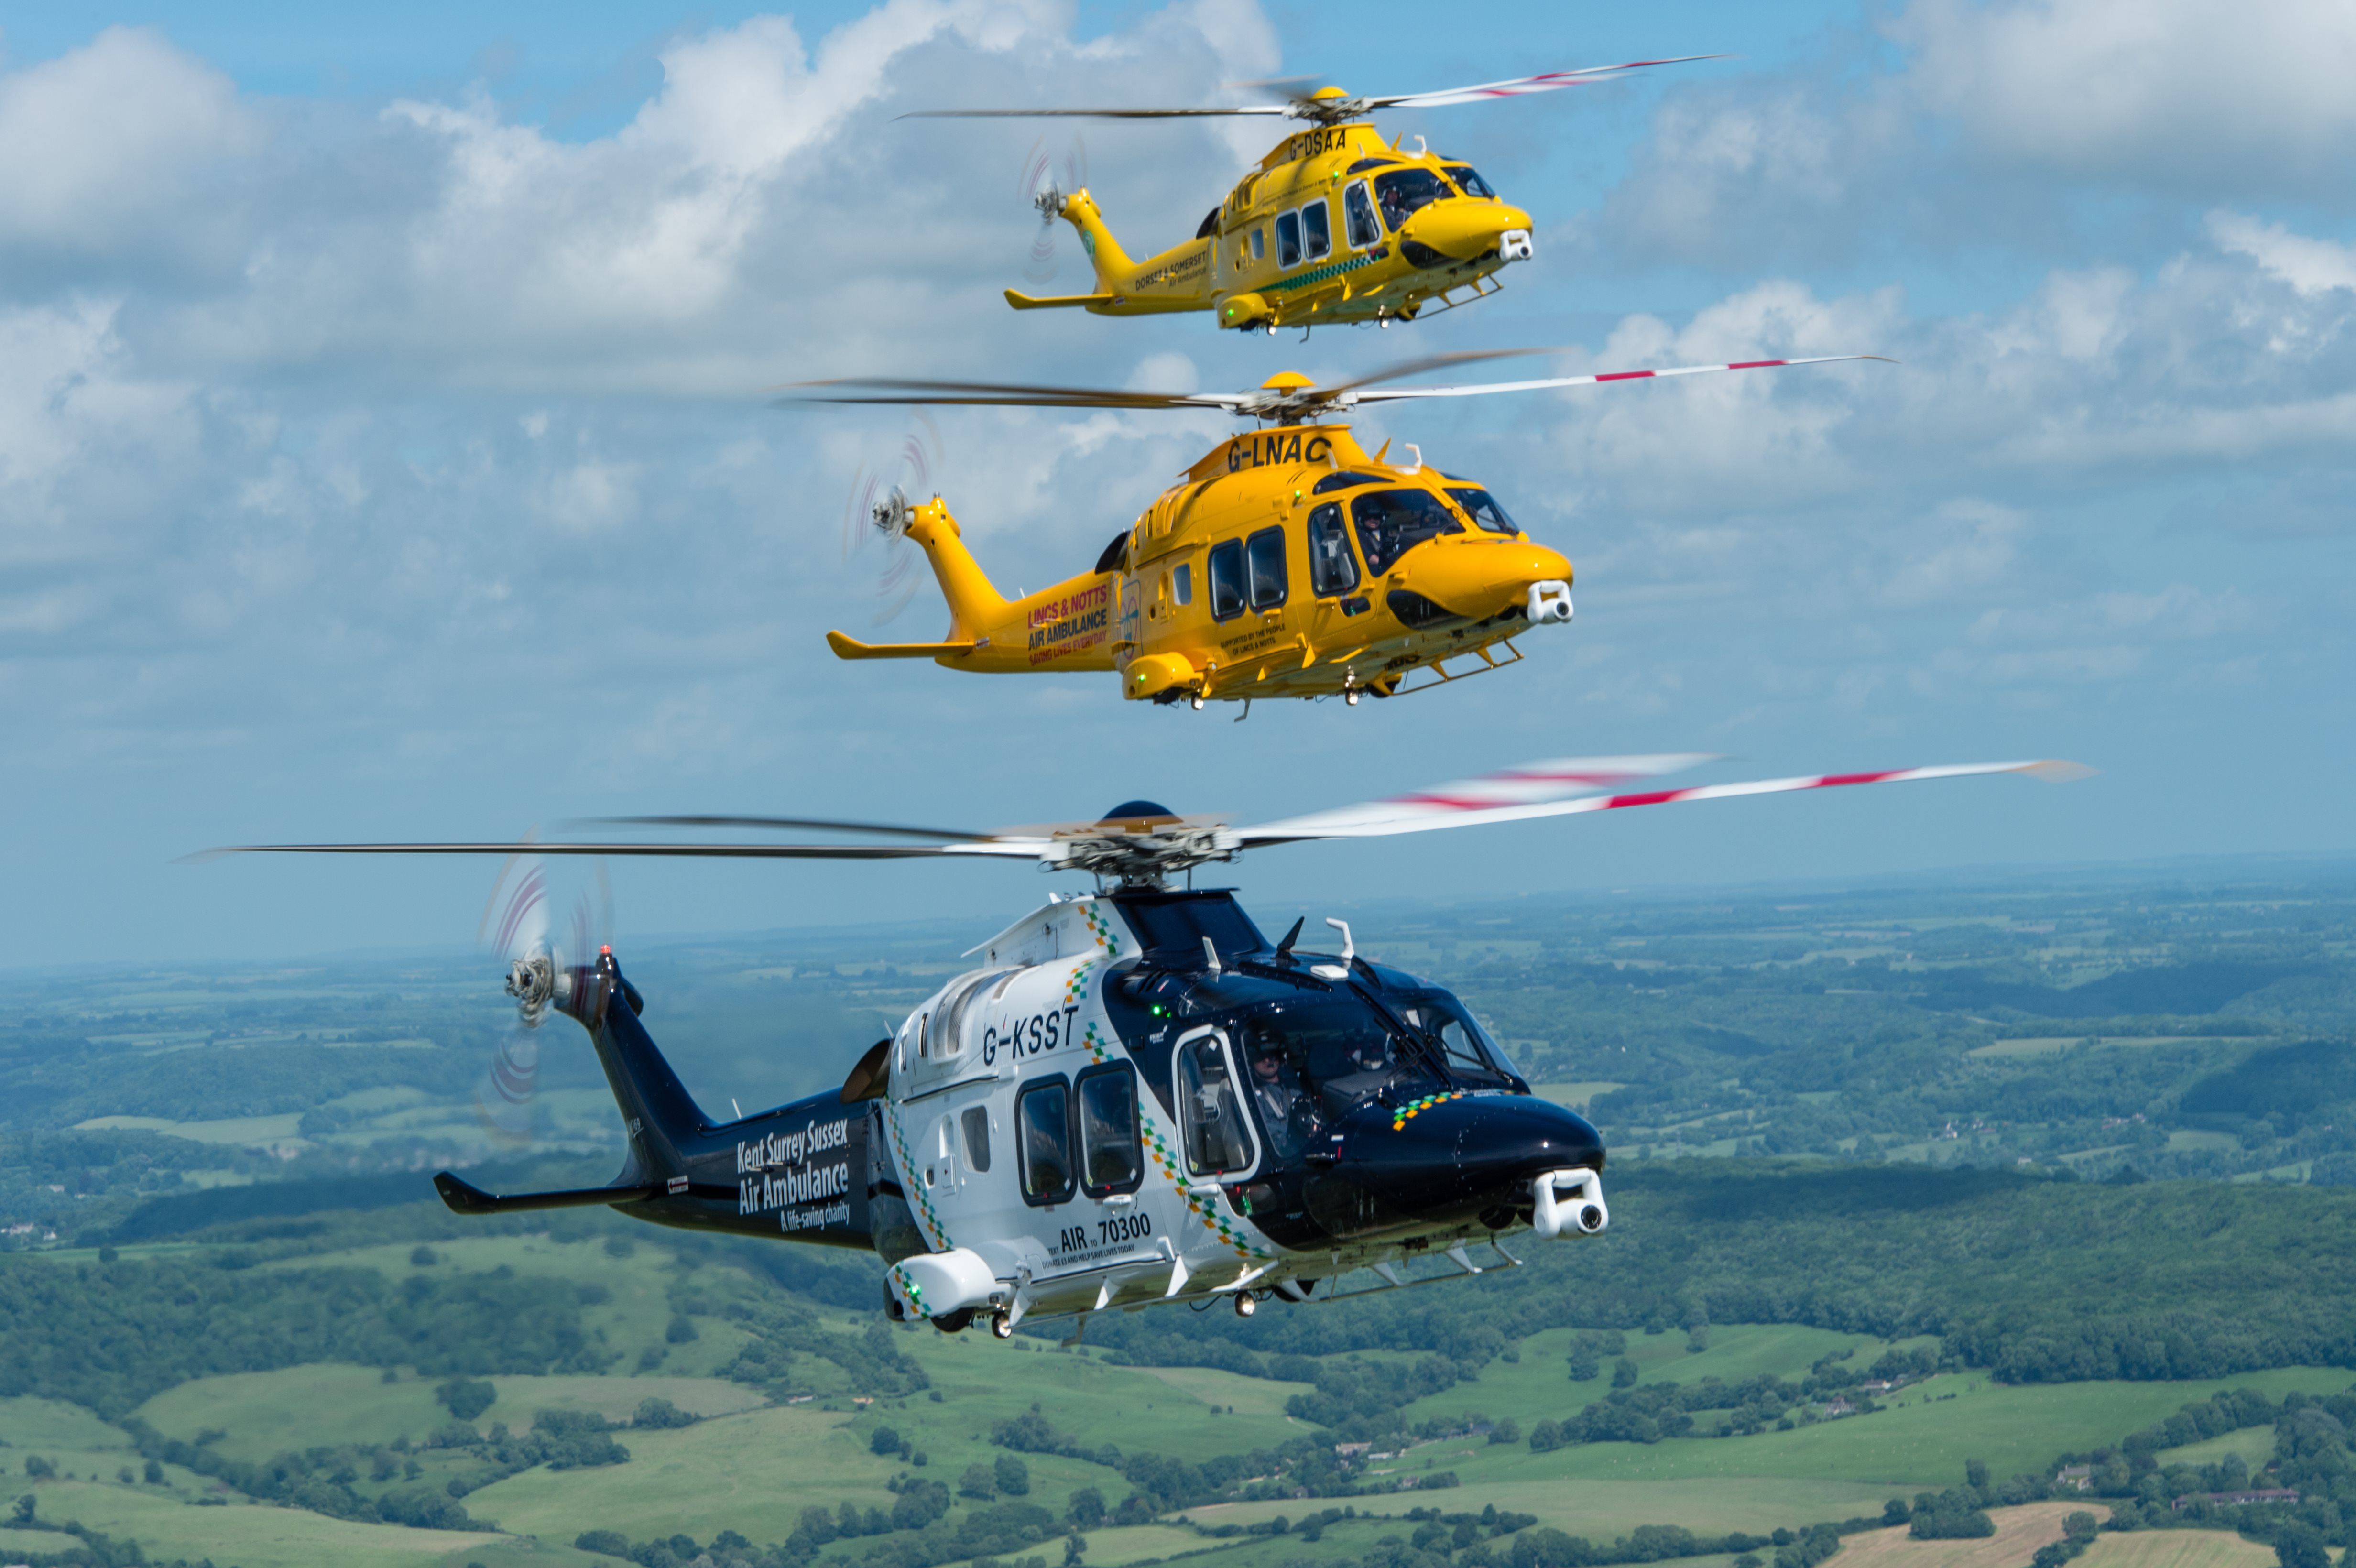 SAS becomes the launch operator for HEMS Leonardo AW169 in the UK